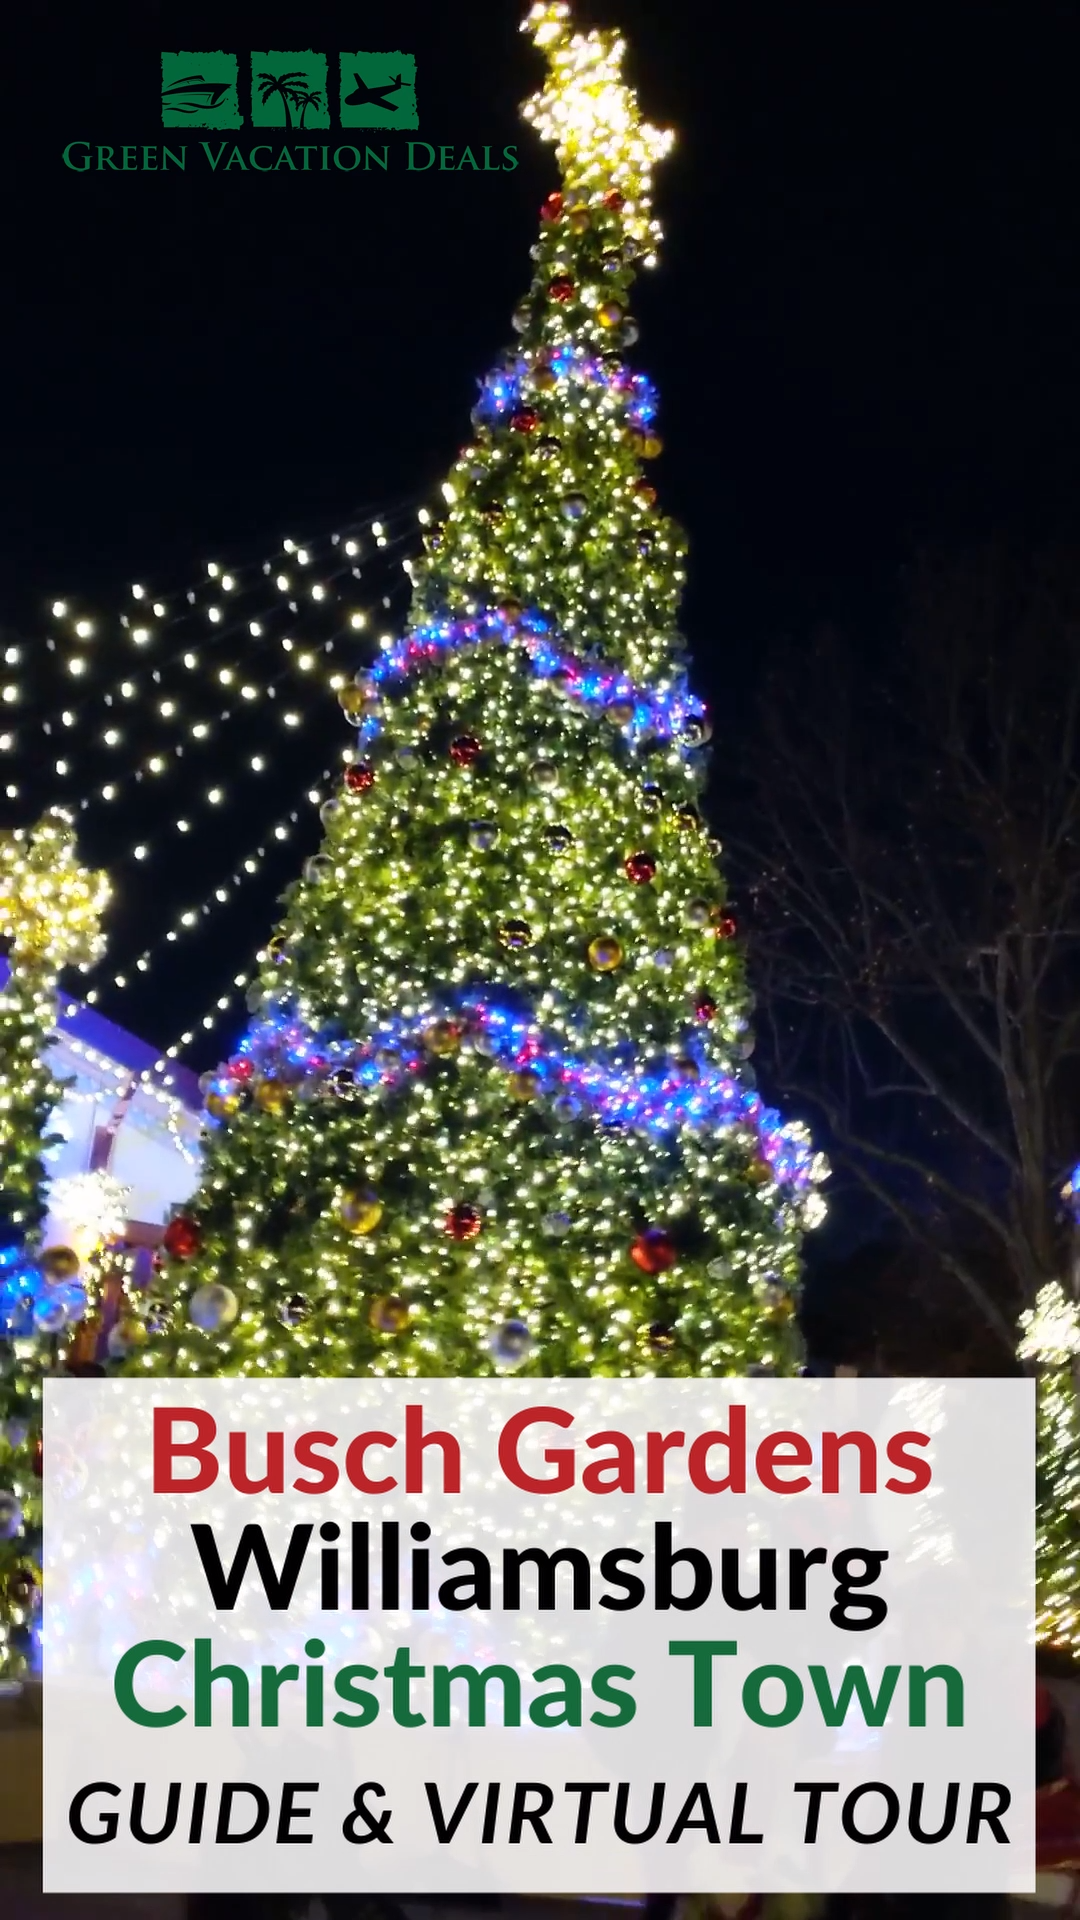 f00083013e40bb73ac410e805fea115c - Prices For Busch Gardens Christmas Town